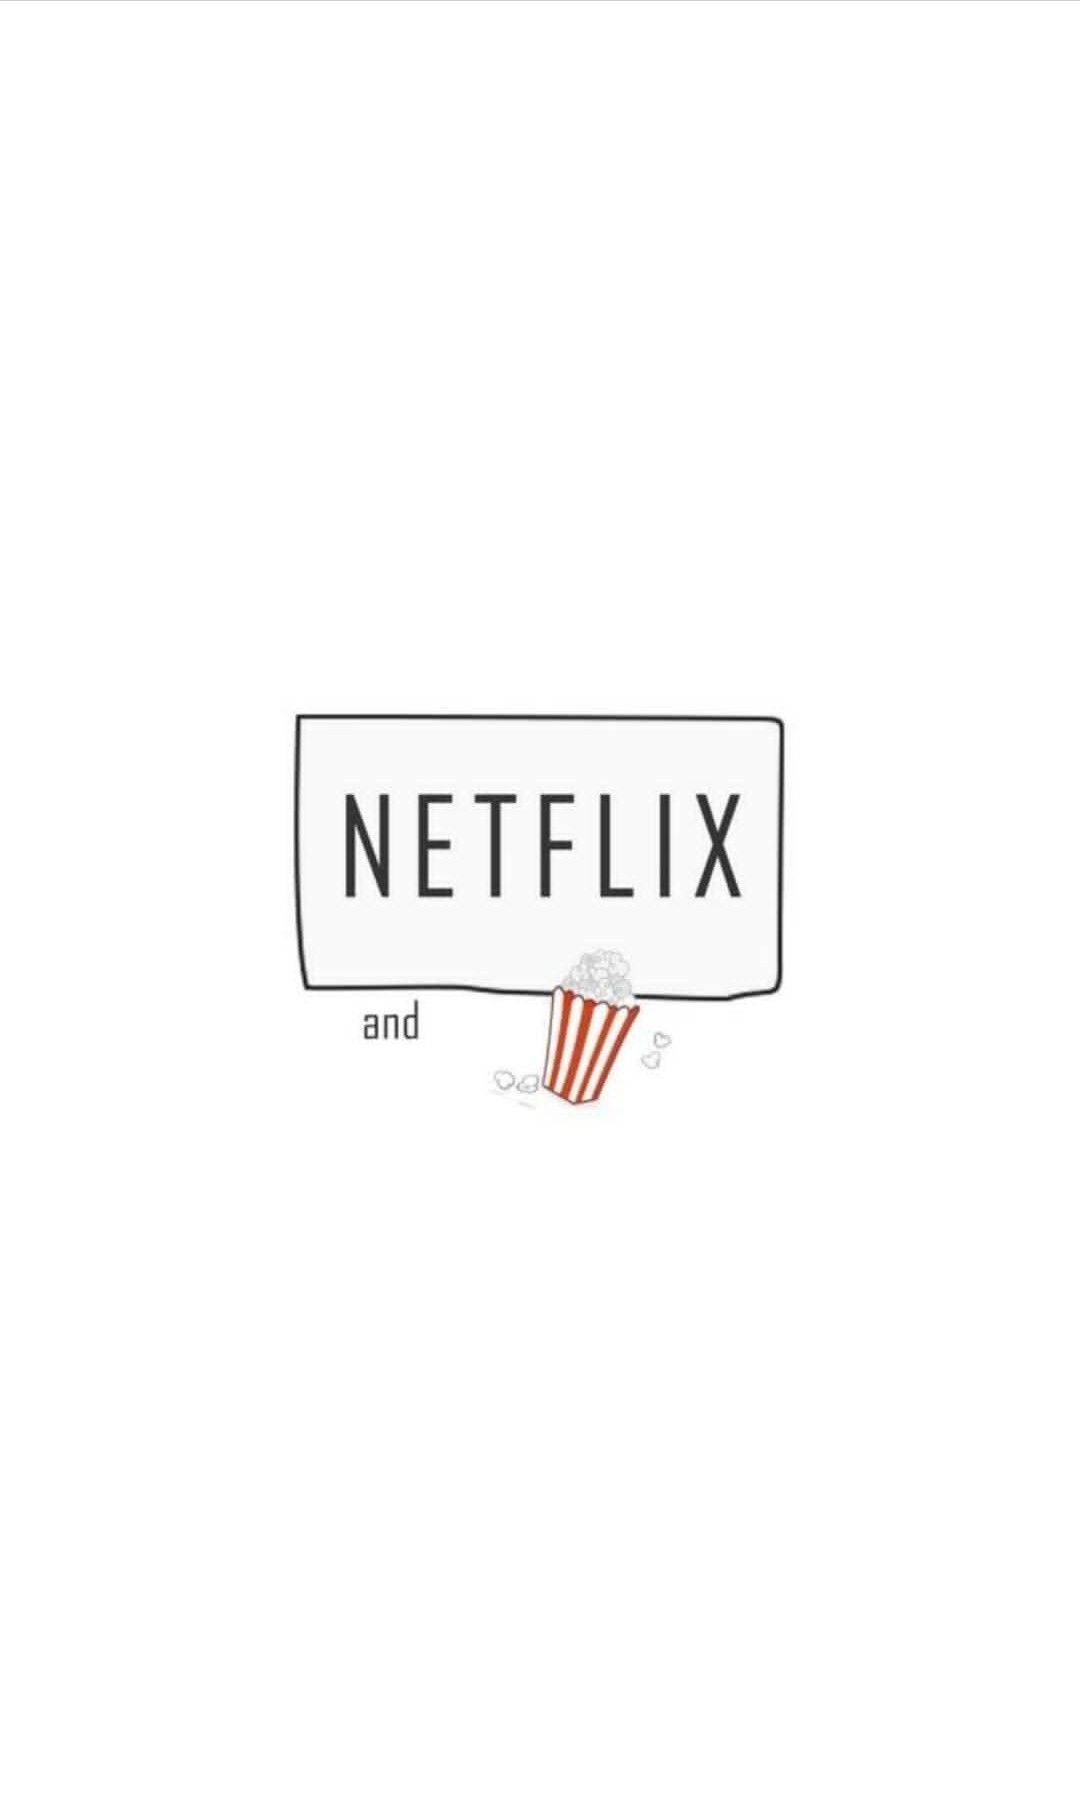 Netflix Cell Screensaver Background 11 Clubboxingday Boxingday Raba Funny Phone Wallpaper Iphone Wallpaper Tumblr Aesthetic Wallpaper Iphone Cute